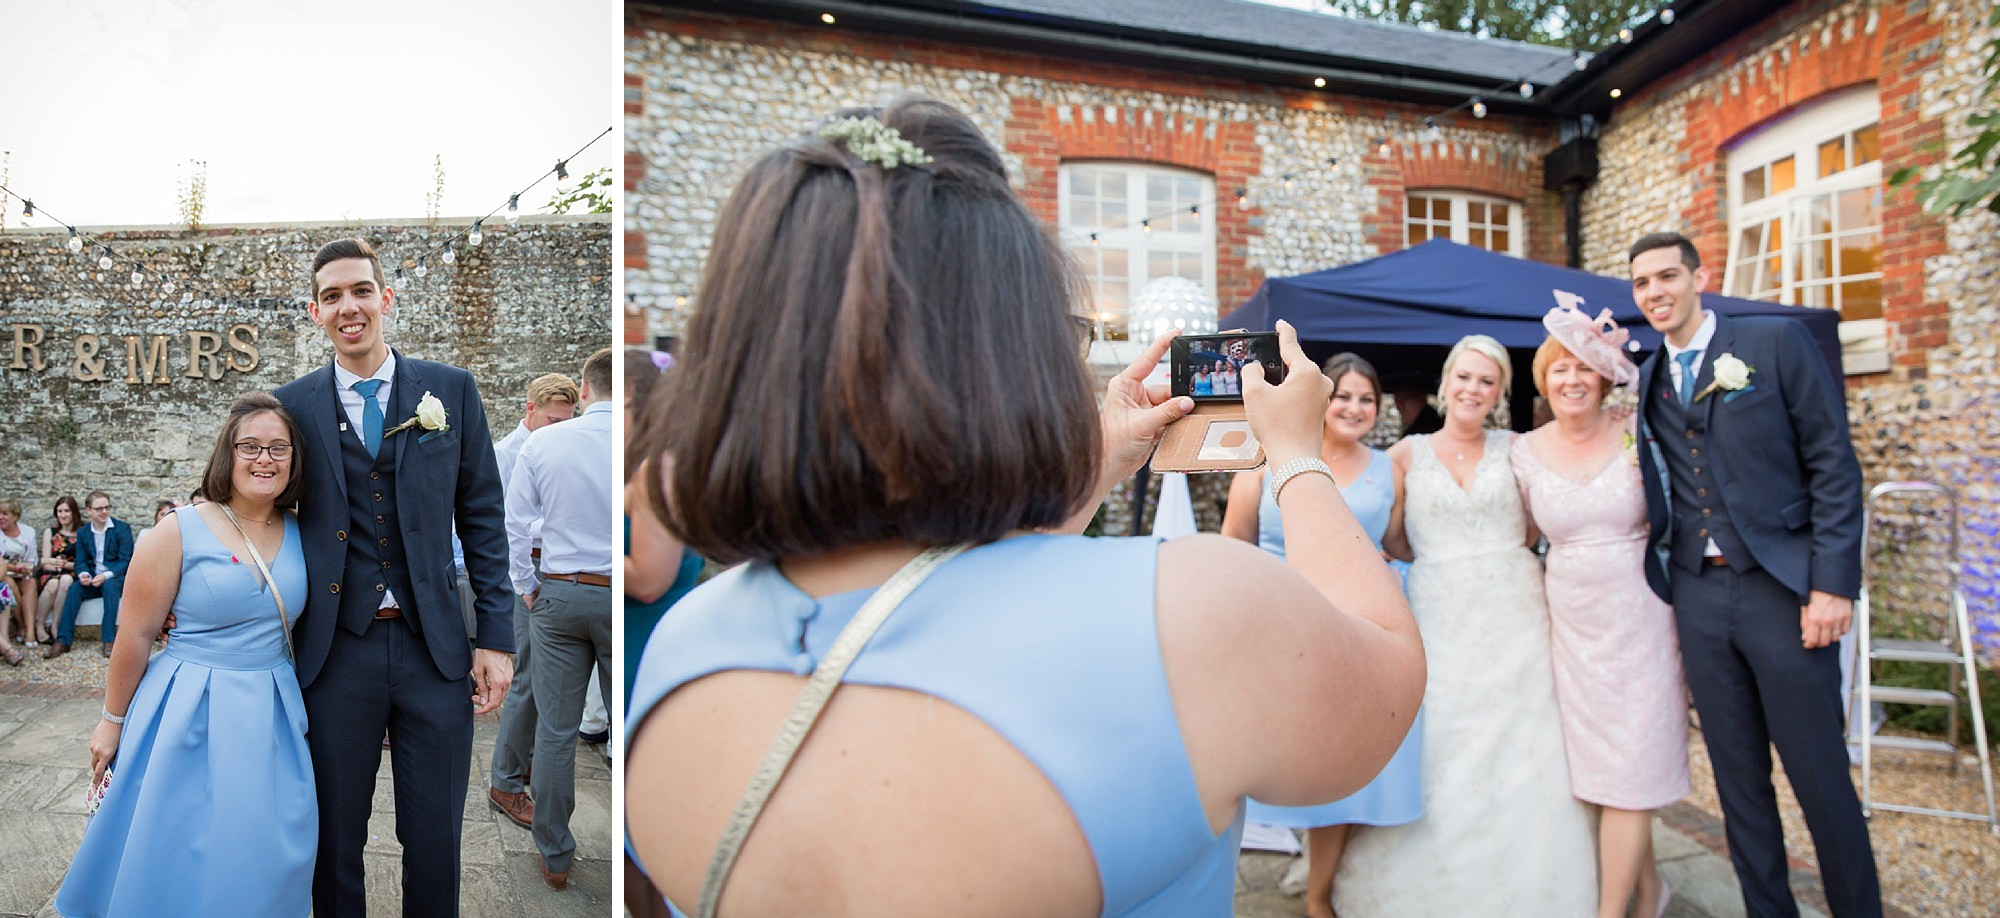 Bignor Park wedding photography bridesmaid taking picture